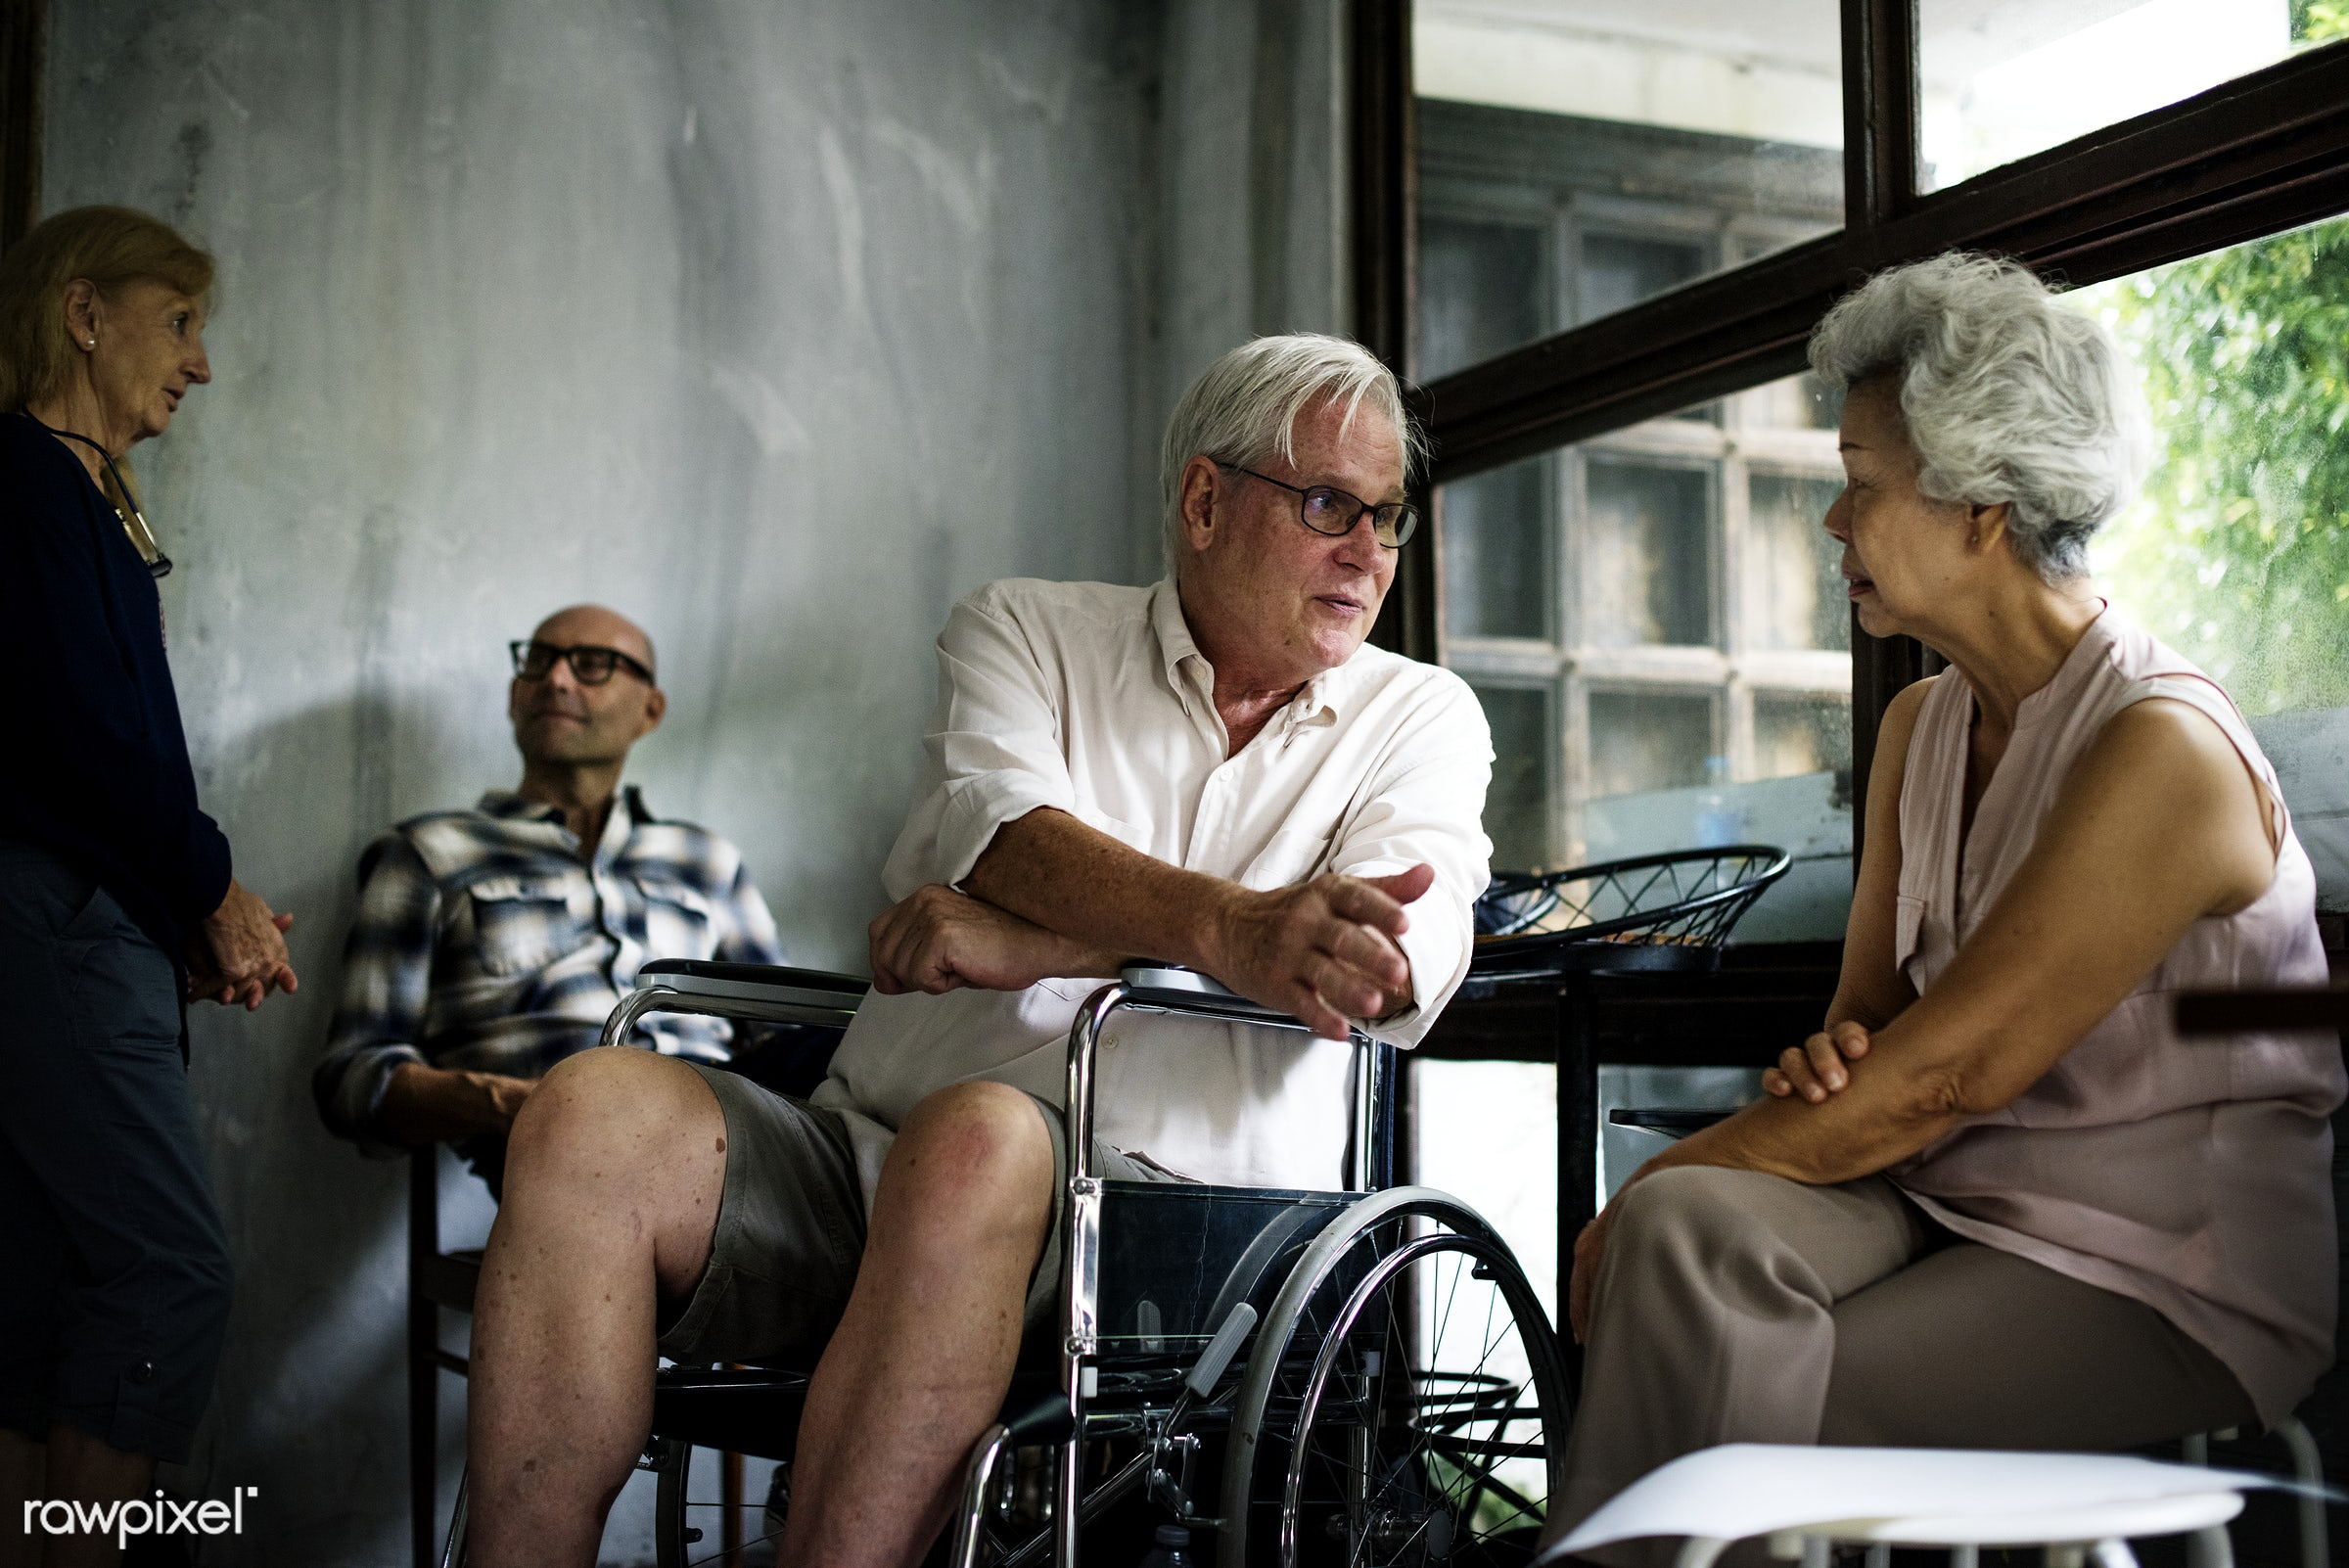 spouses, old, relax, indoors, people, together, friends, wheelchair, disability, various, disable, cheerful, handicapped,...